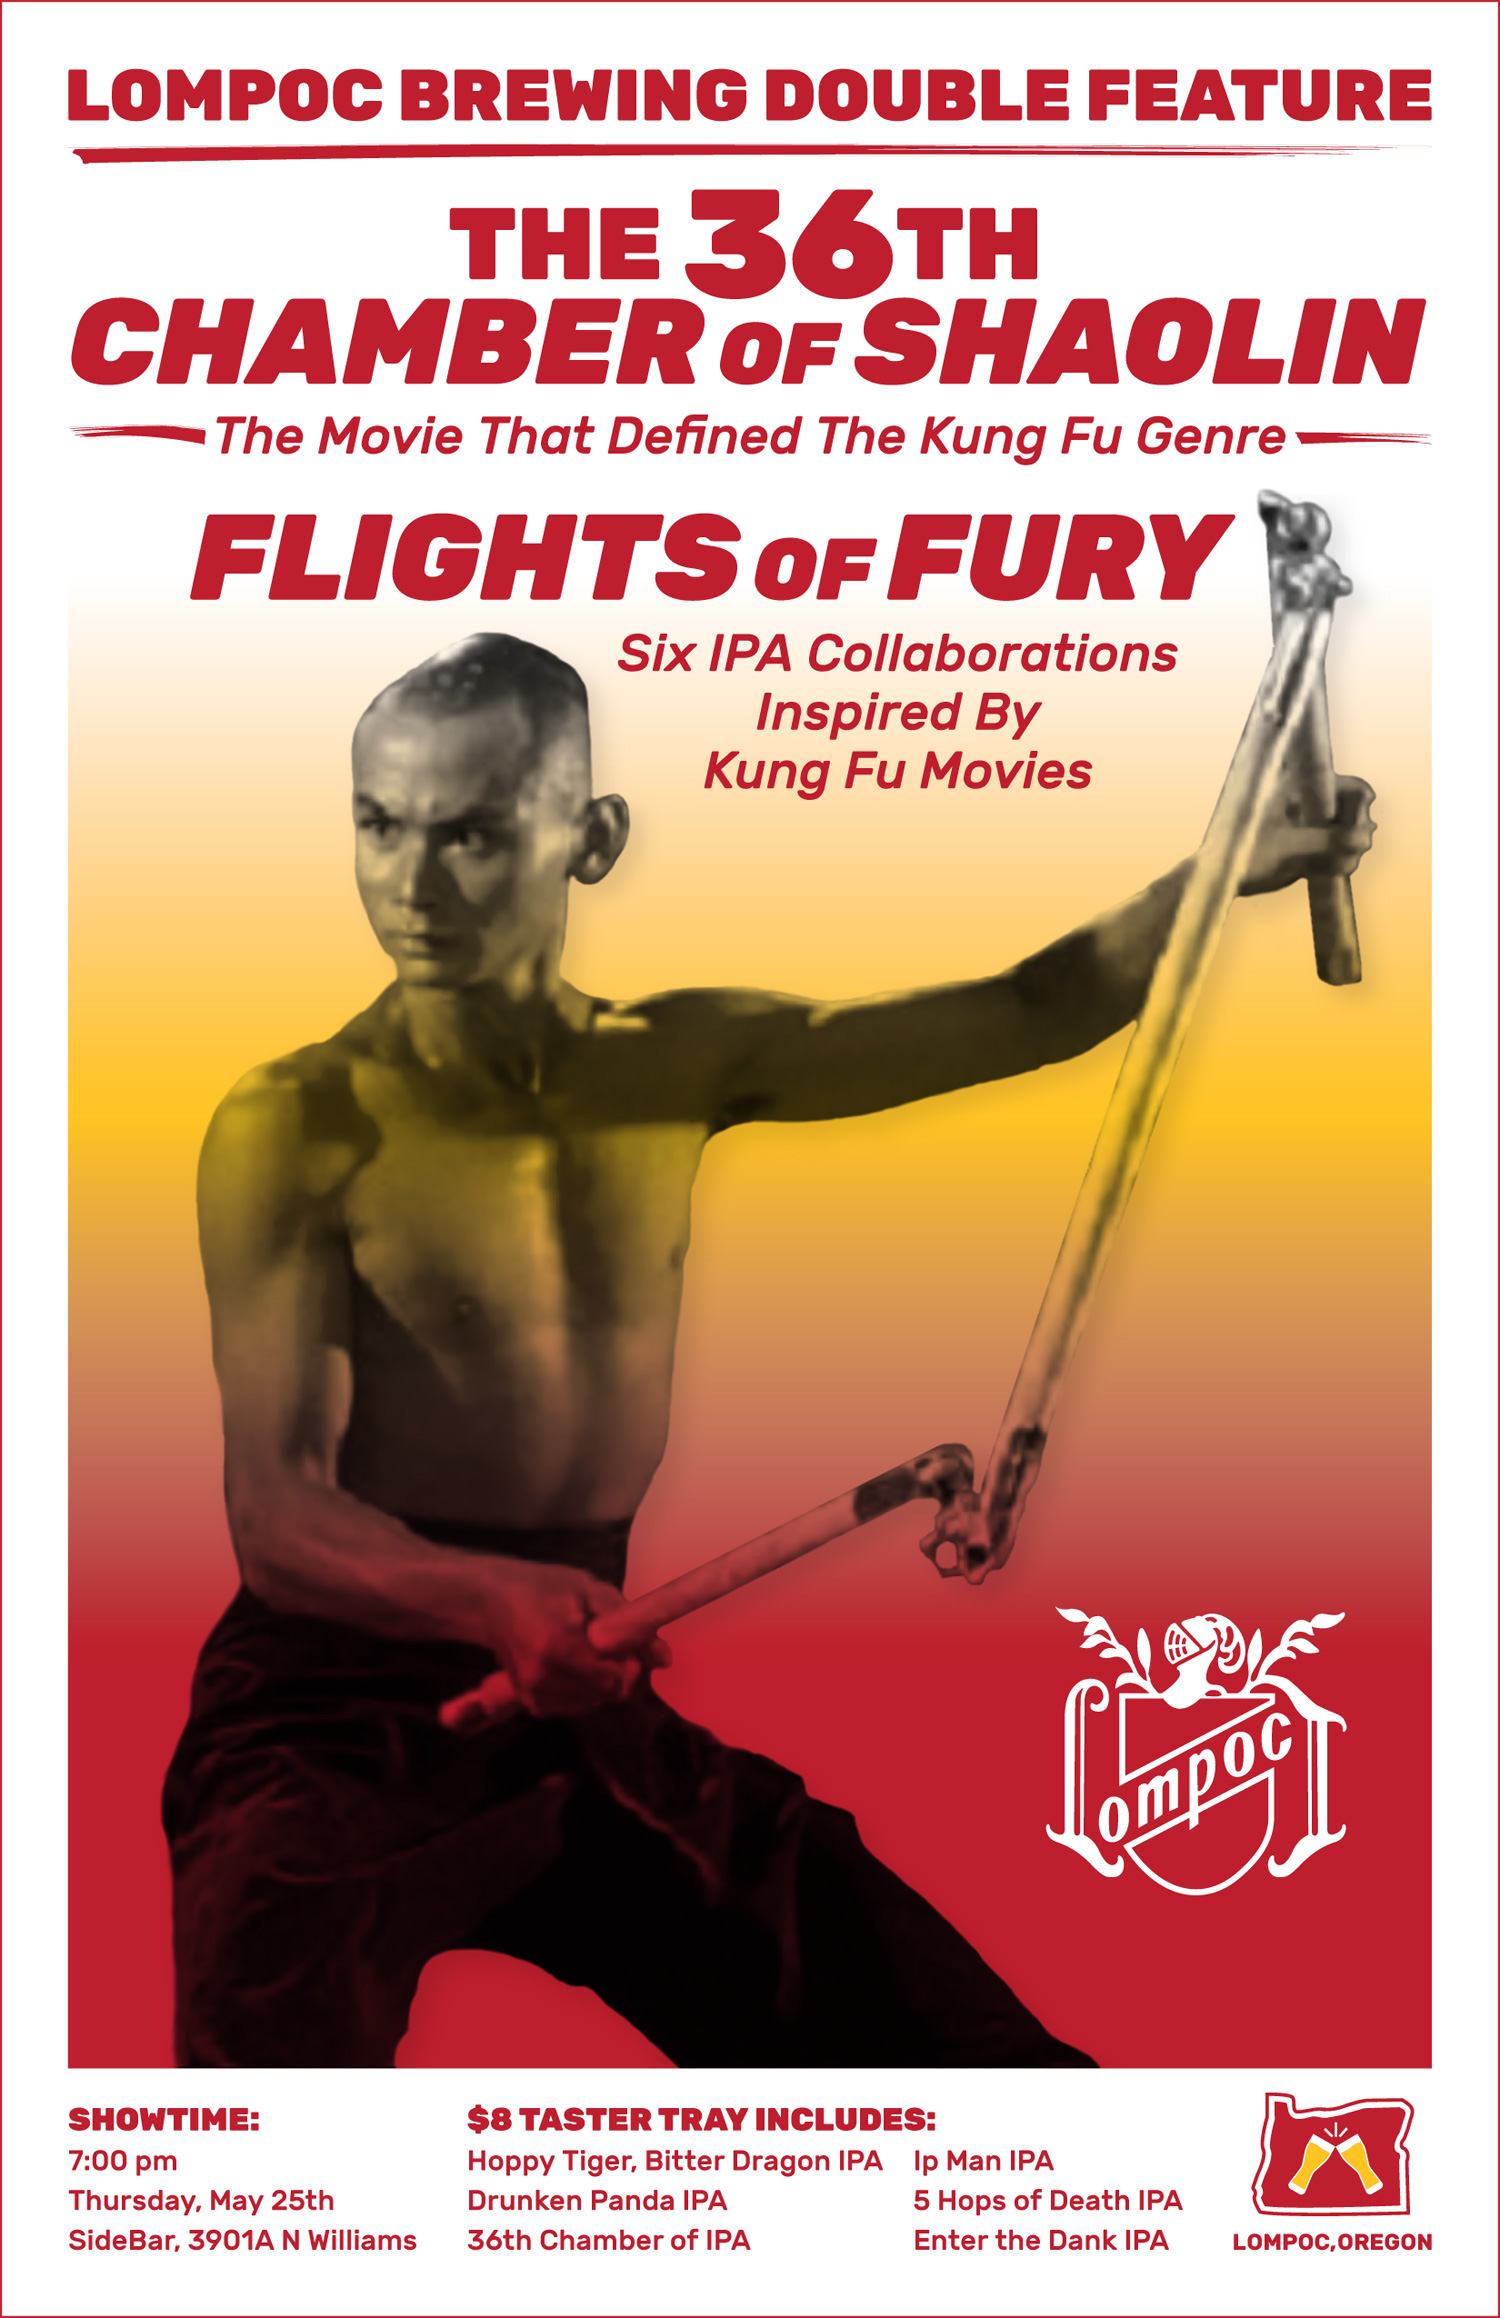 Design by Jen Lompoc Brewing Flights of Fury Poster Design